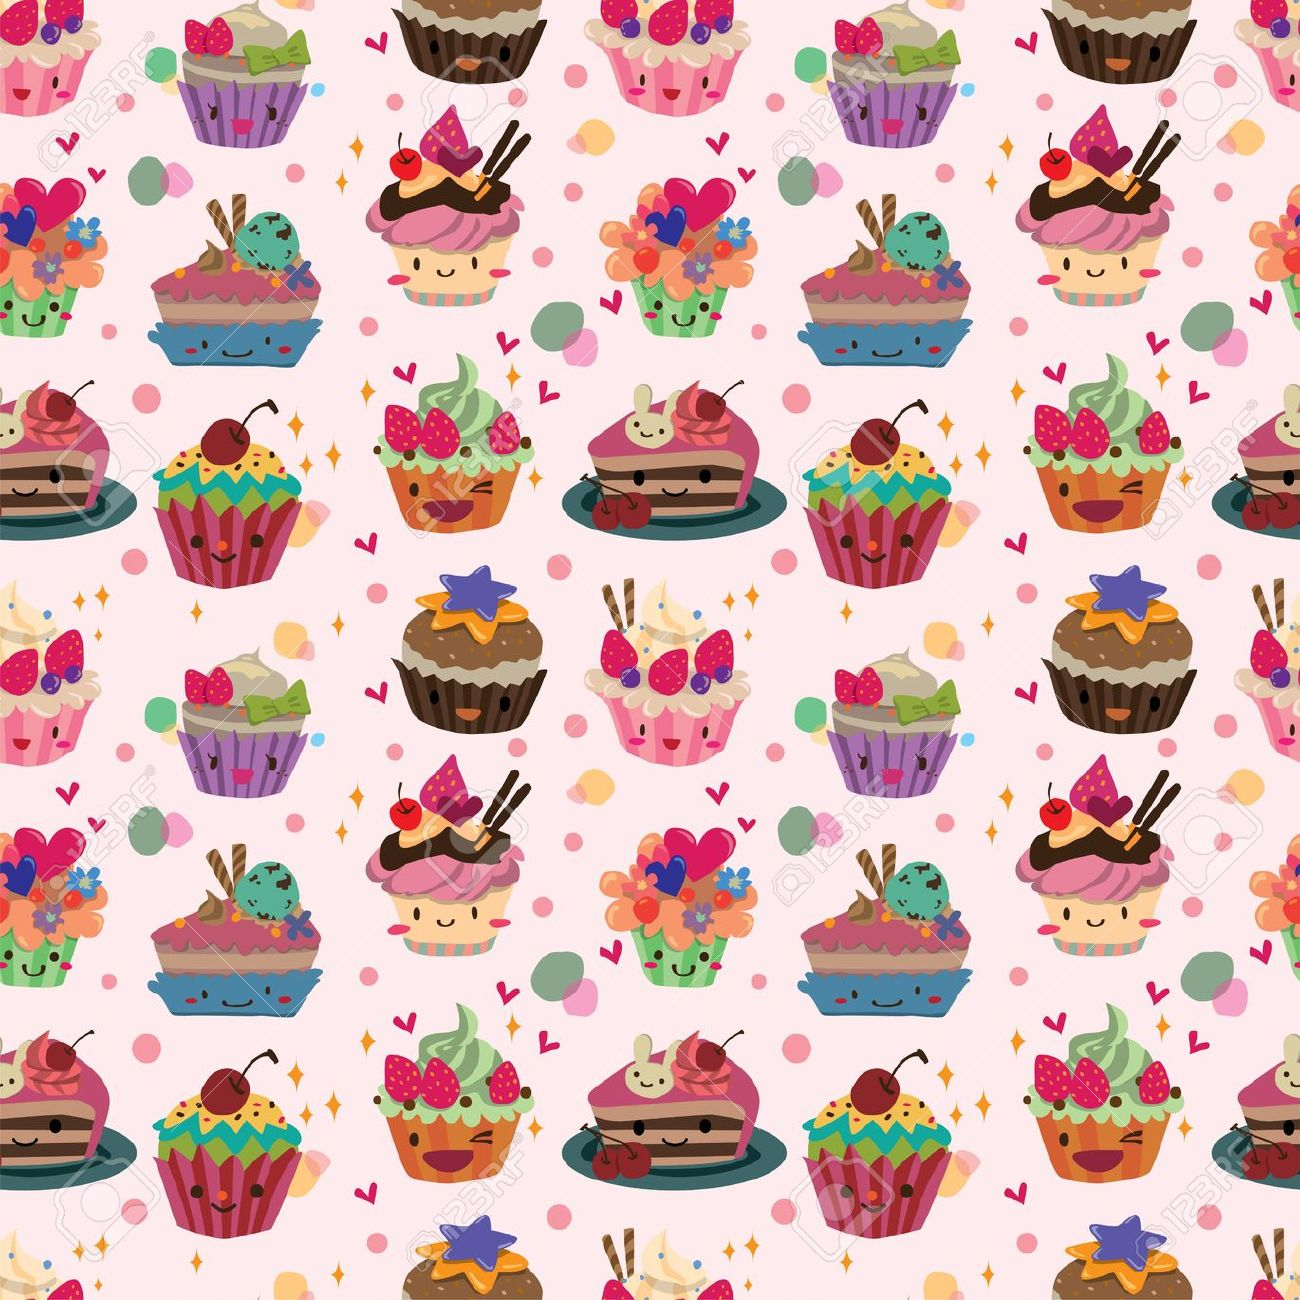 Wallpaper Cake Cartoon